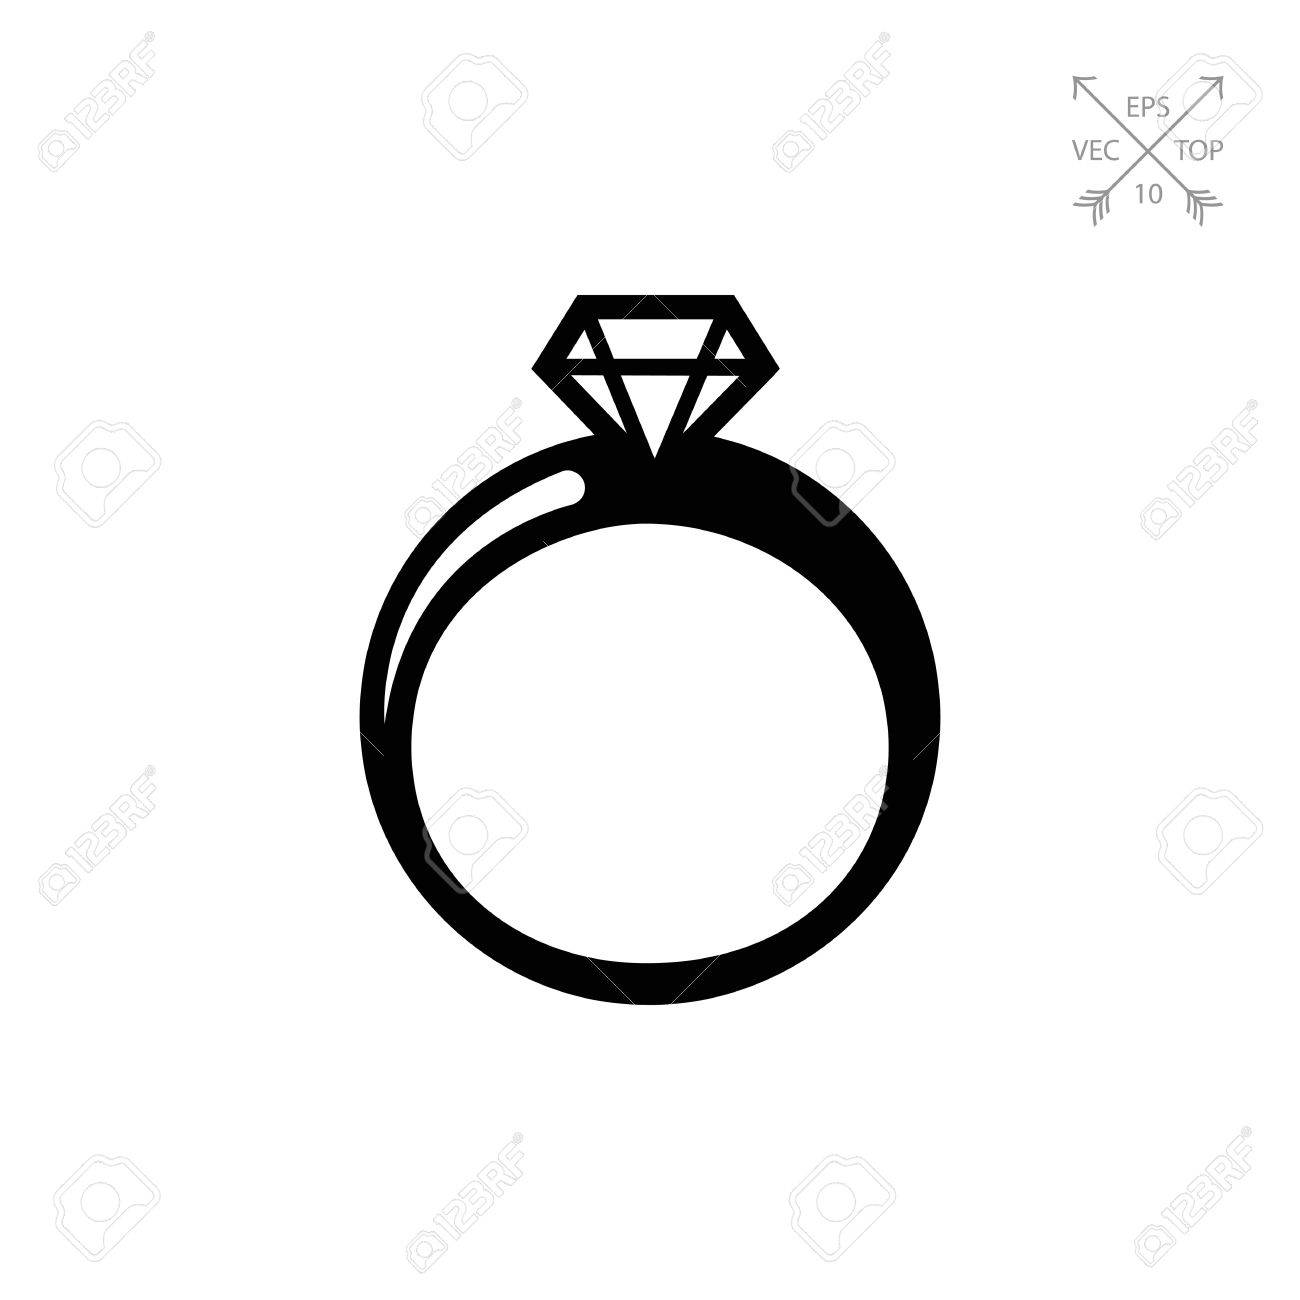 Engagement clipart shiny ring. Silhouette free download best